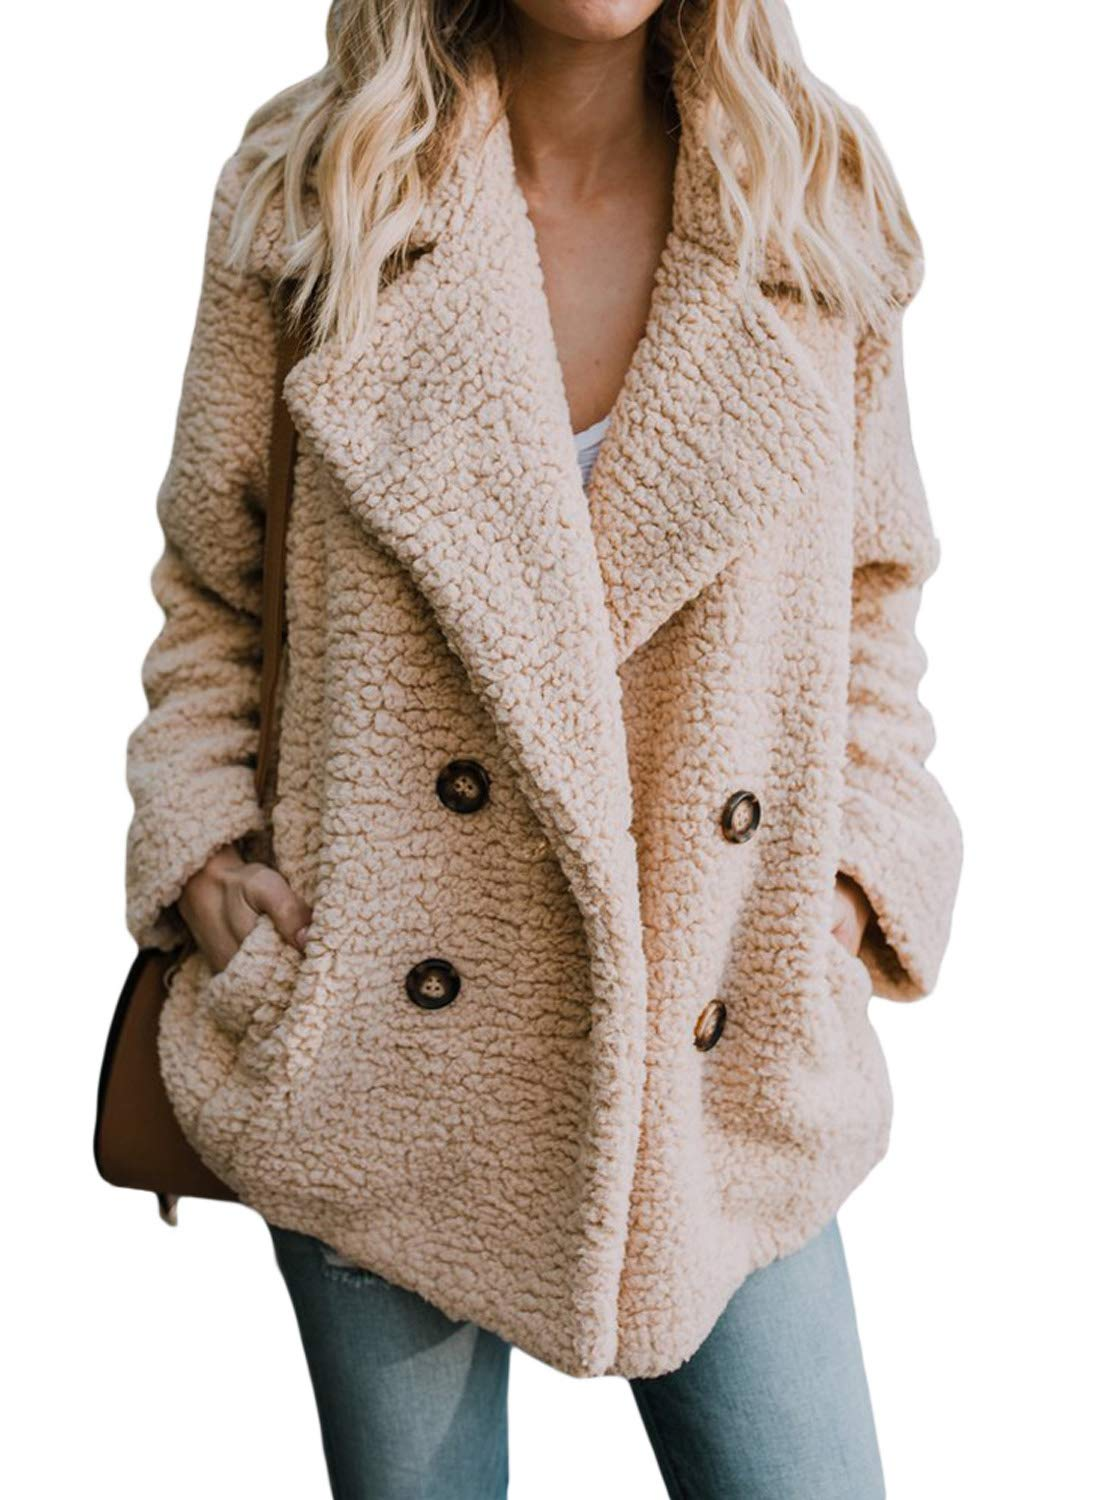 Dokotoo Womens Fashion 2019 Winter Warm Solid Oversized Sherpa Fleece Sweater Cardigans Open Front Fuzzy Loose Coats with Pockets Fluffy Outerwears Jackets Khaki Medium by Dokotoo